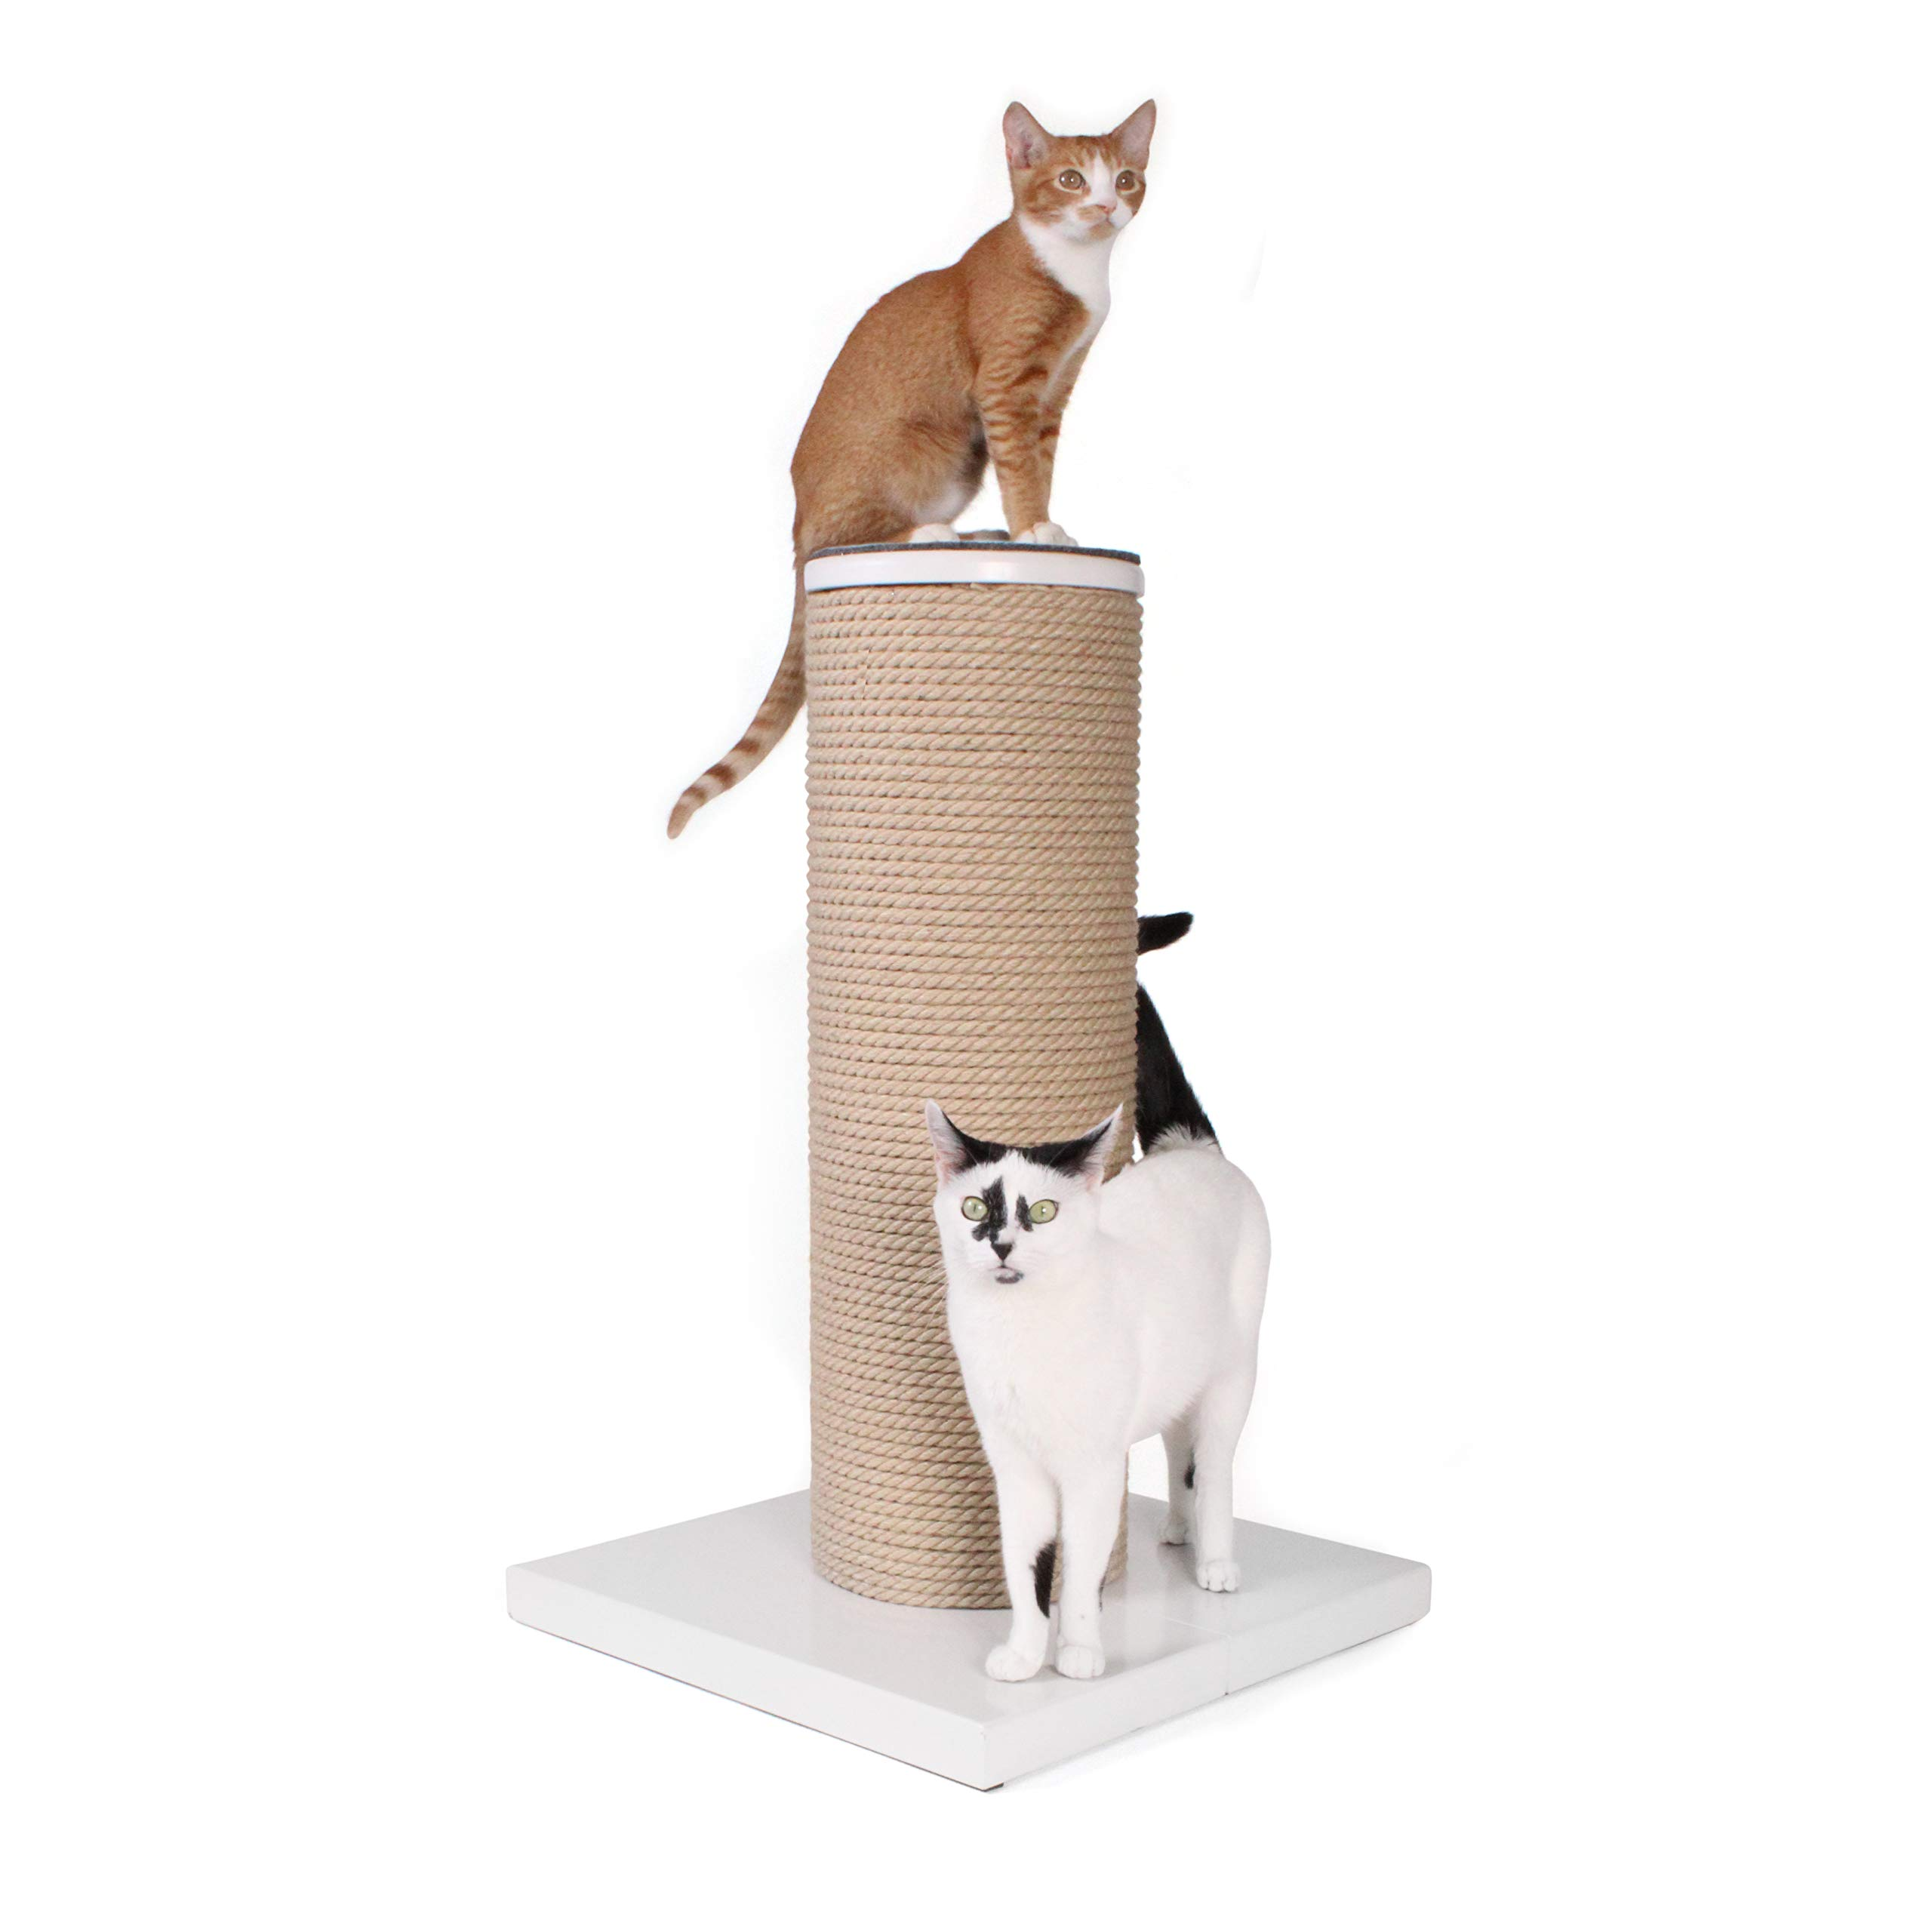 Primetime Petz Hauspanther Maxscratch - Oversized Jute Cat Scratcher & Perch, White by Primetime Petz